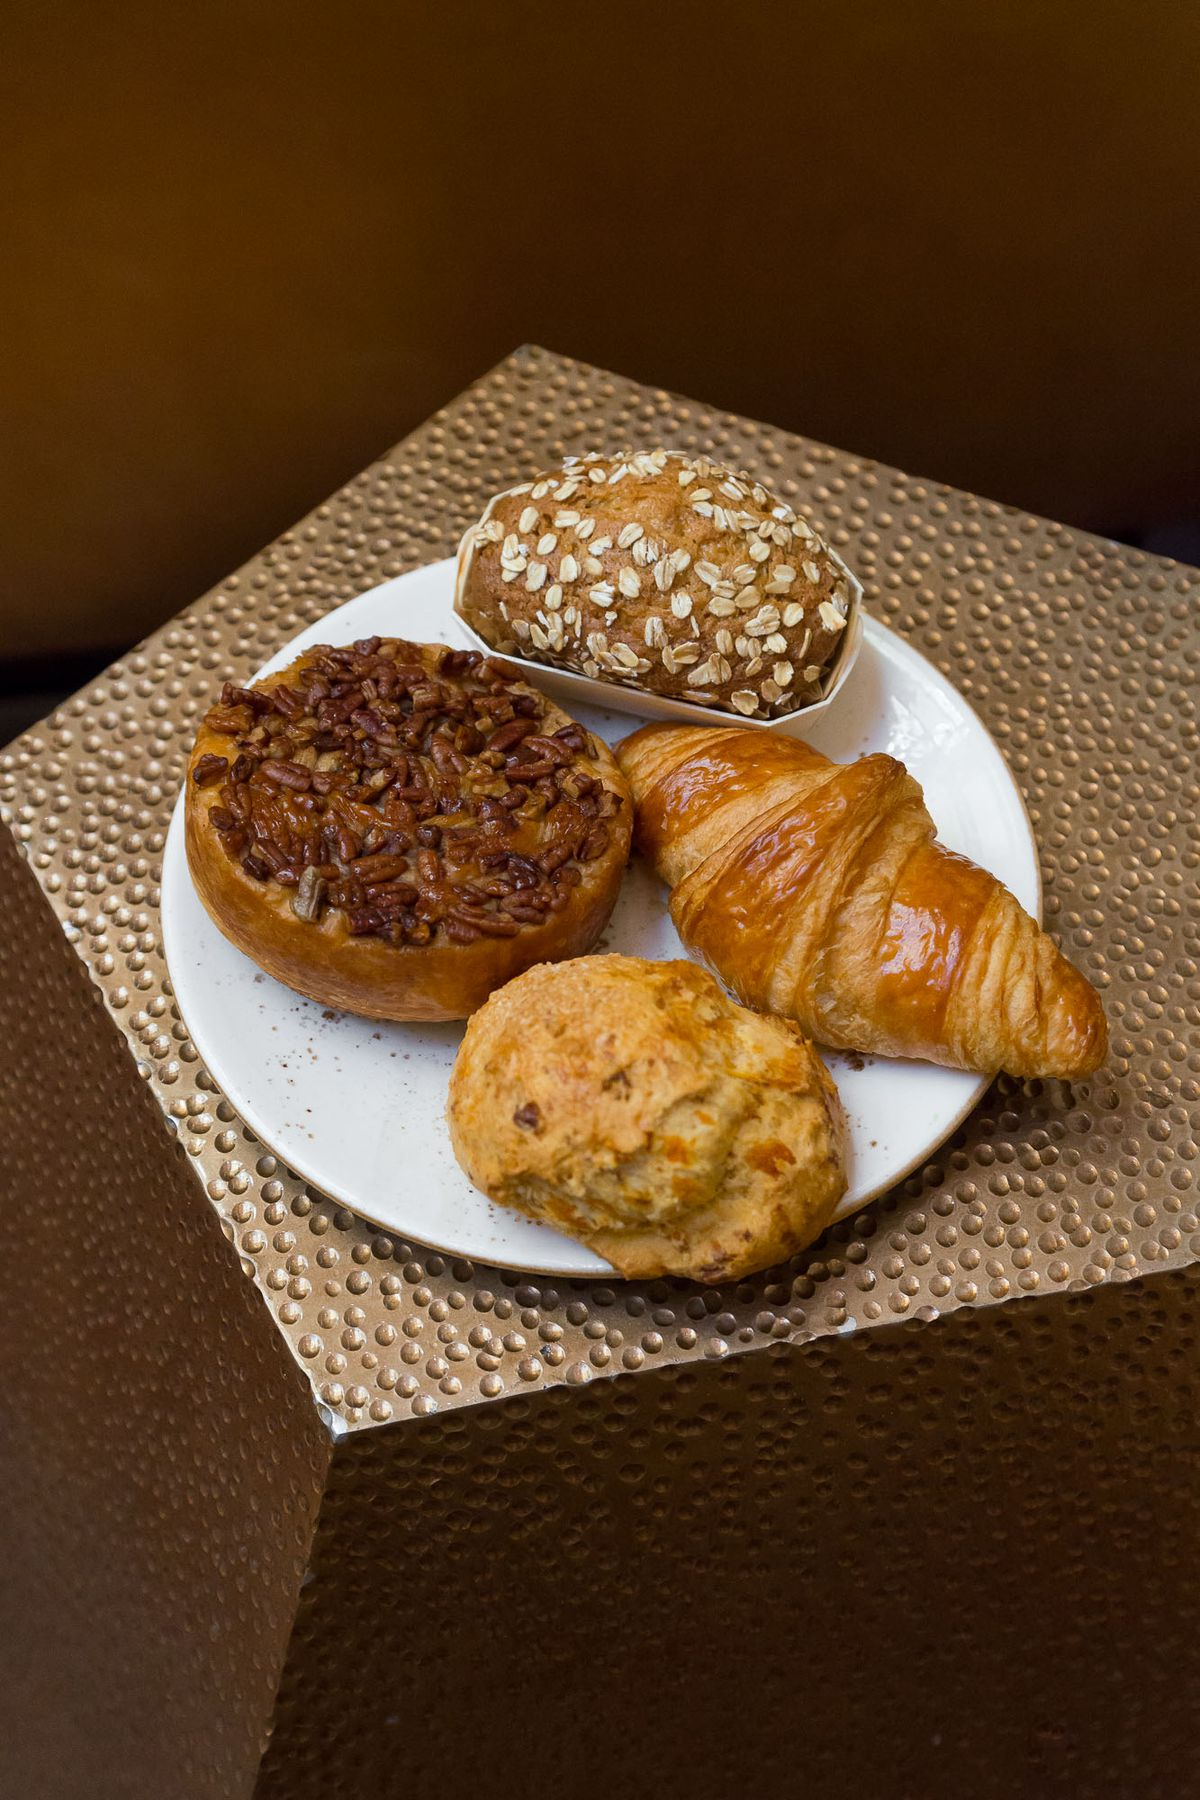 Pastries from Joyce Anne Bucad at 3940 Coffee & Tea